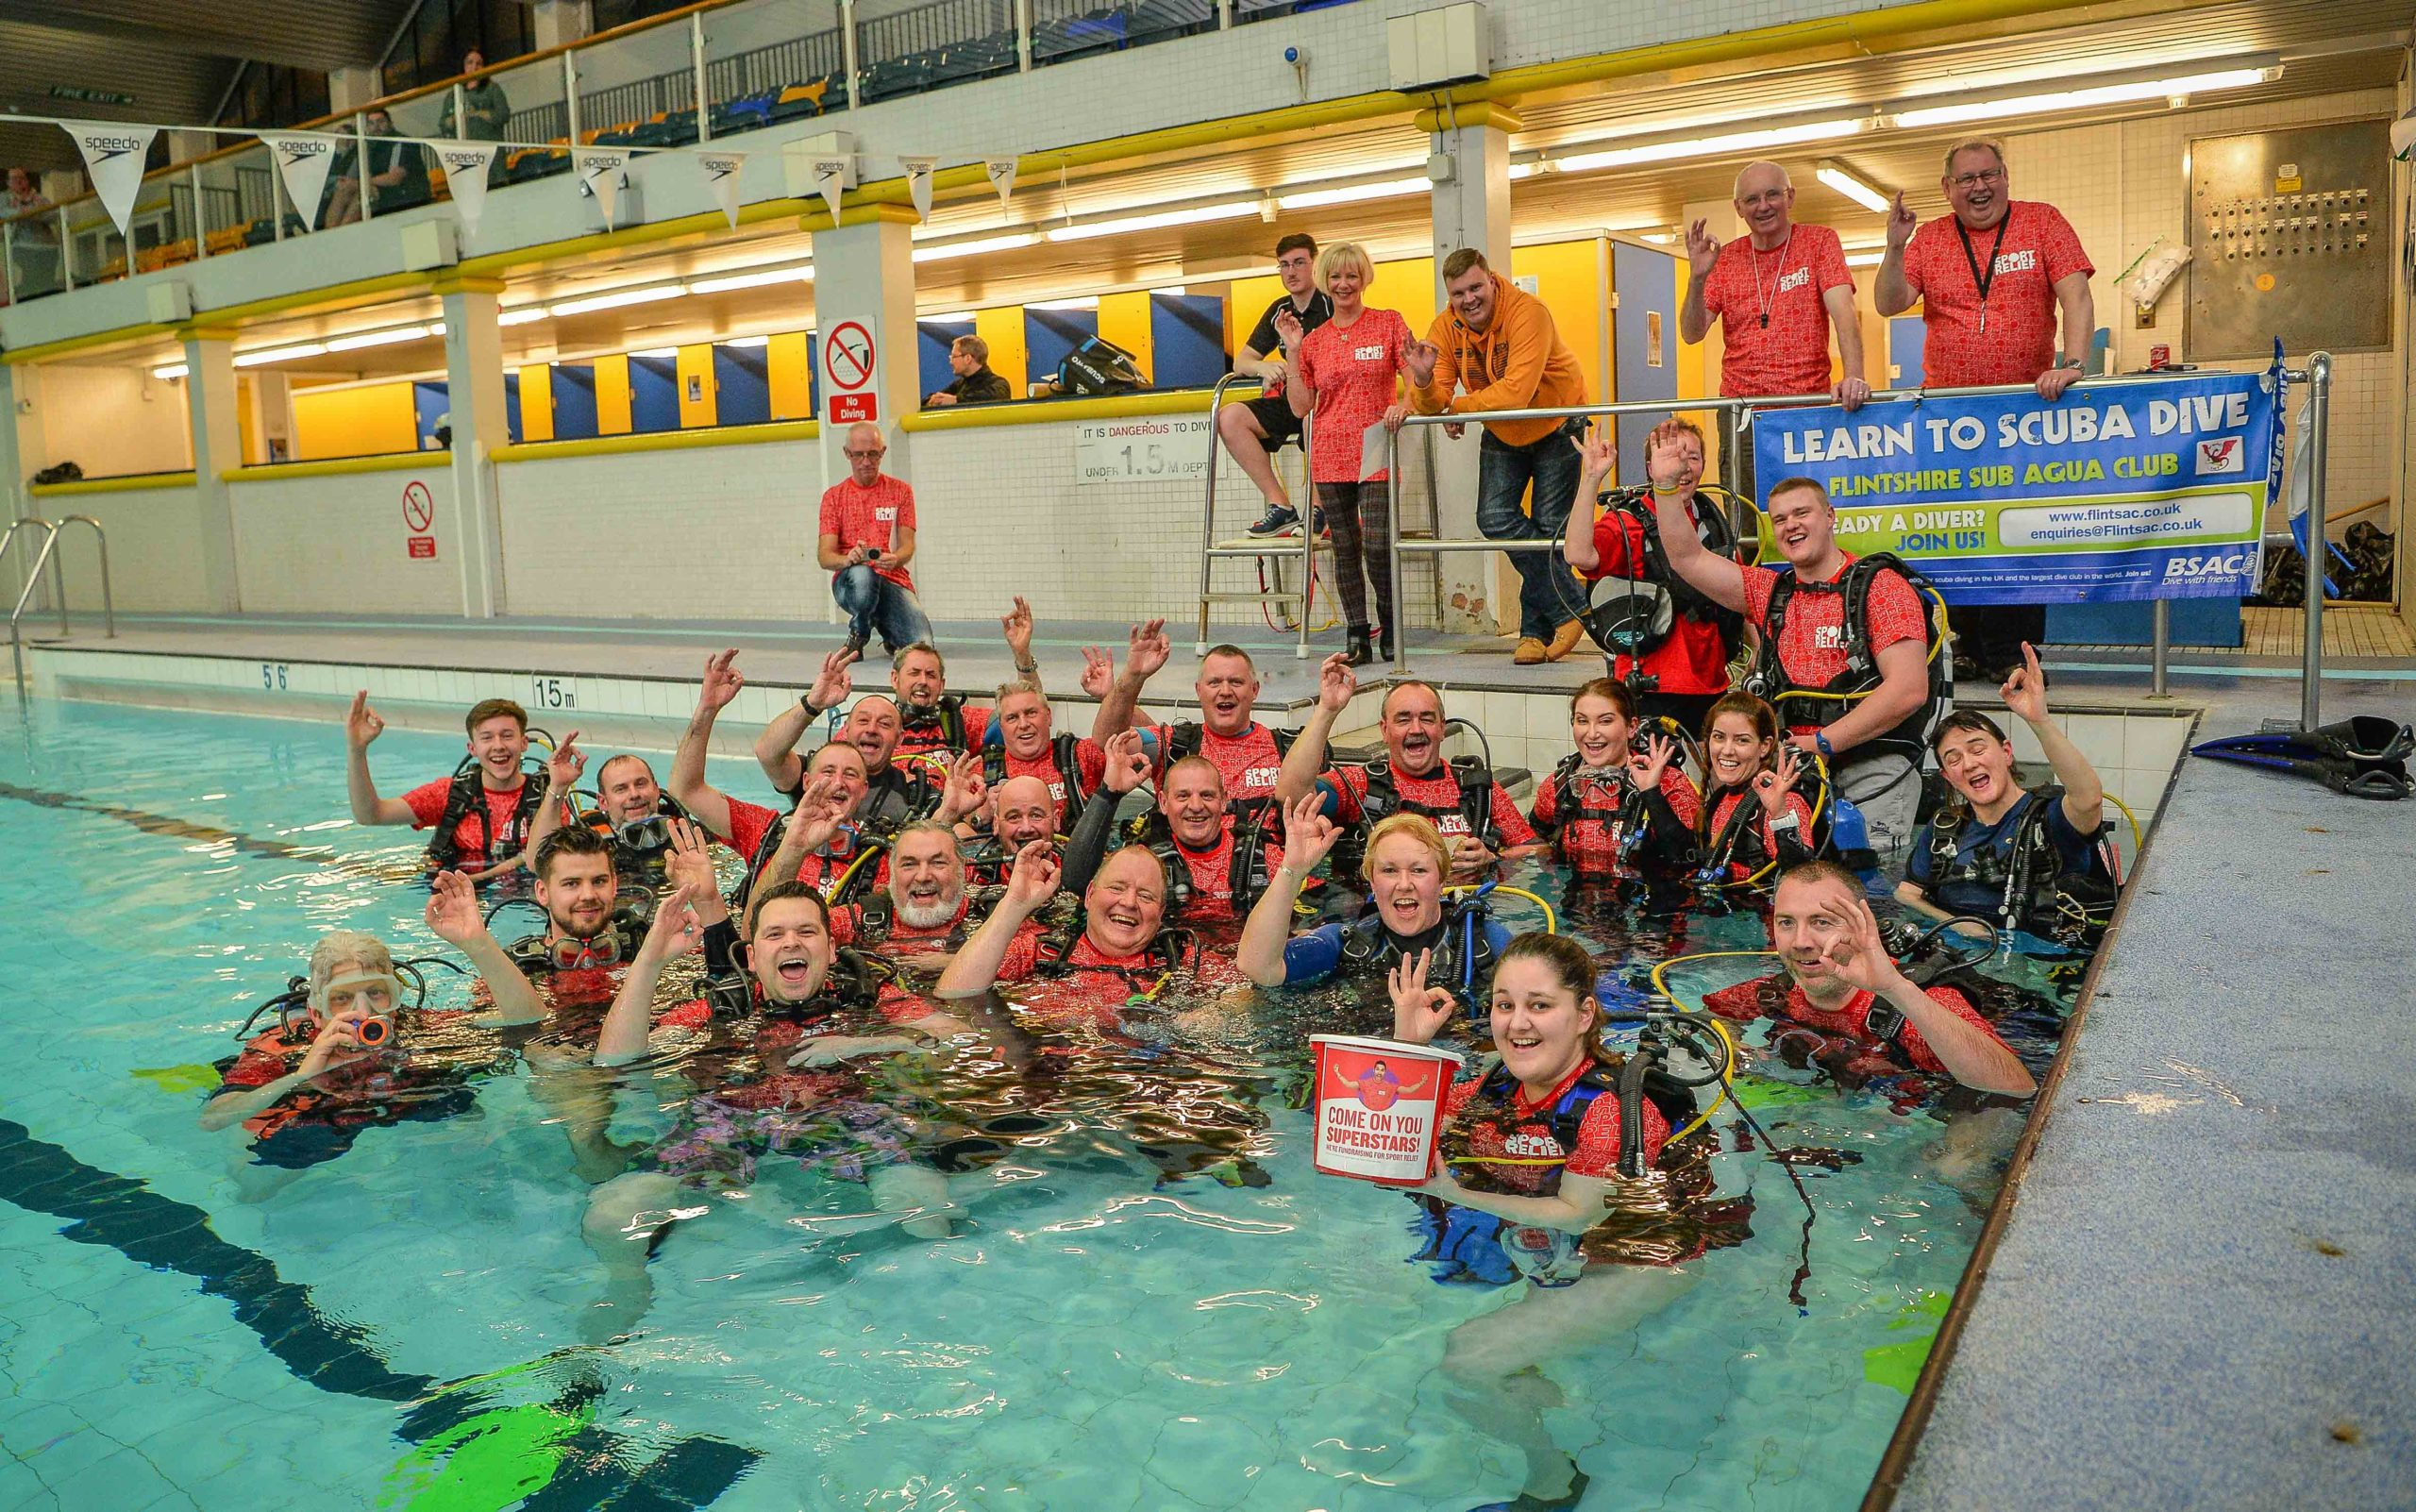 Scuba divers' underwater egg and spoon 'Olympics' raises cash for Sport Relief